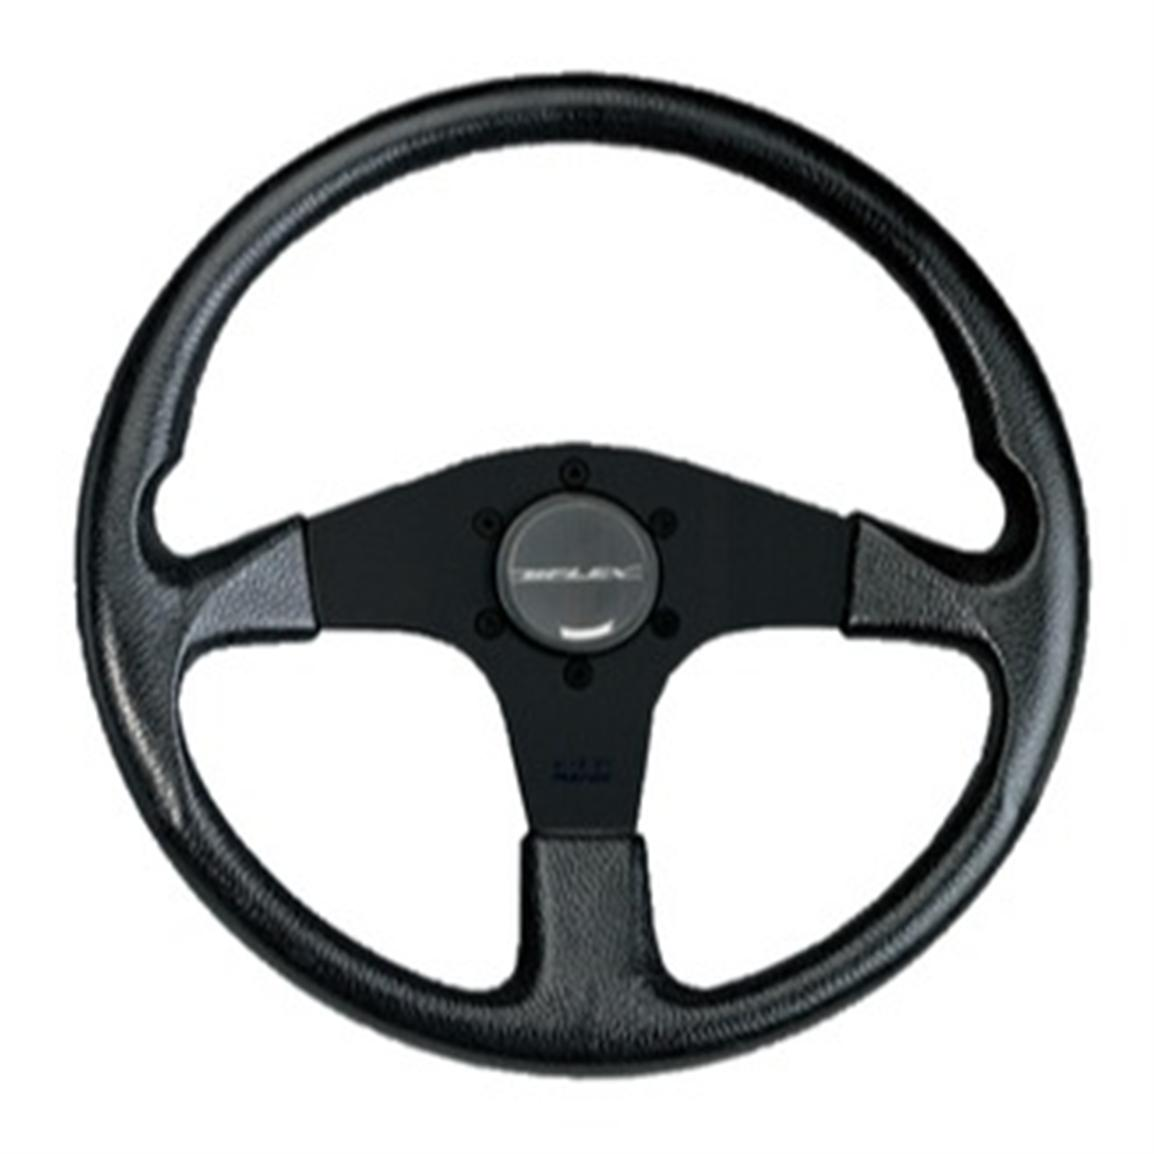 Steering Wheel Clipart | Clipart Panda - Free Clipart Images